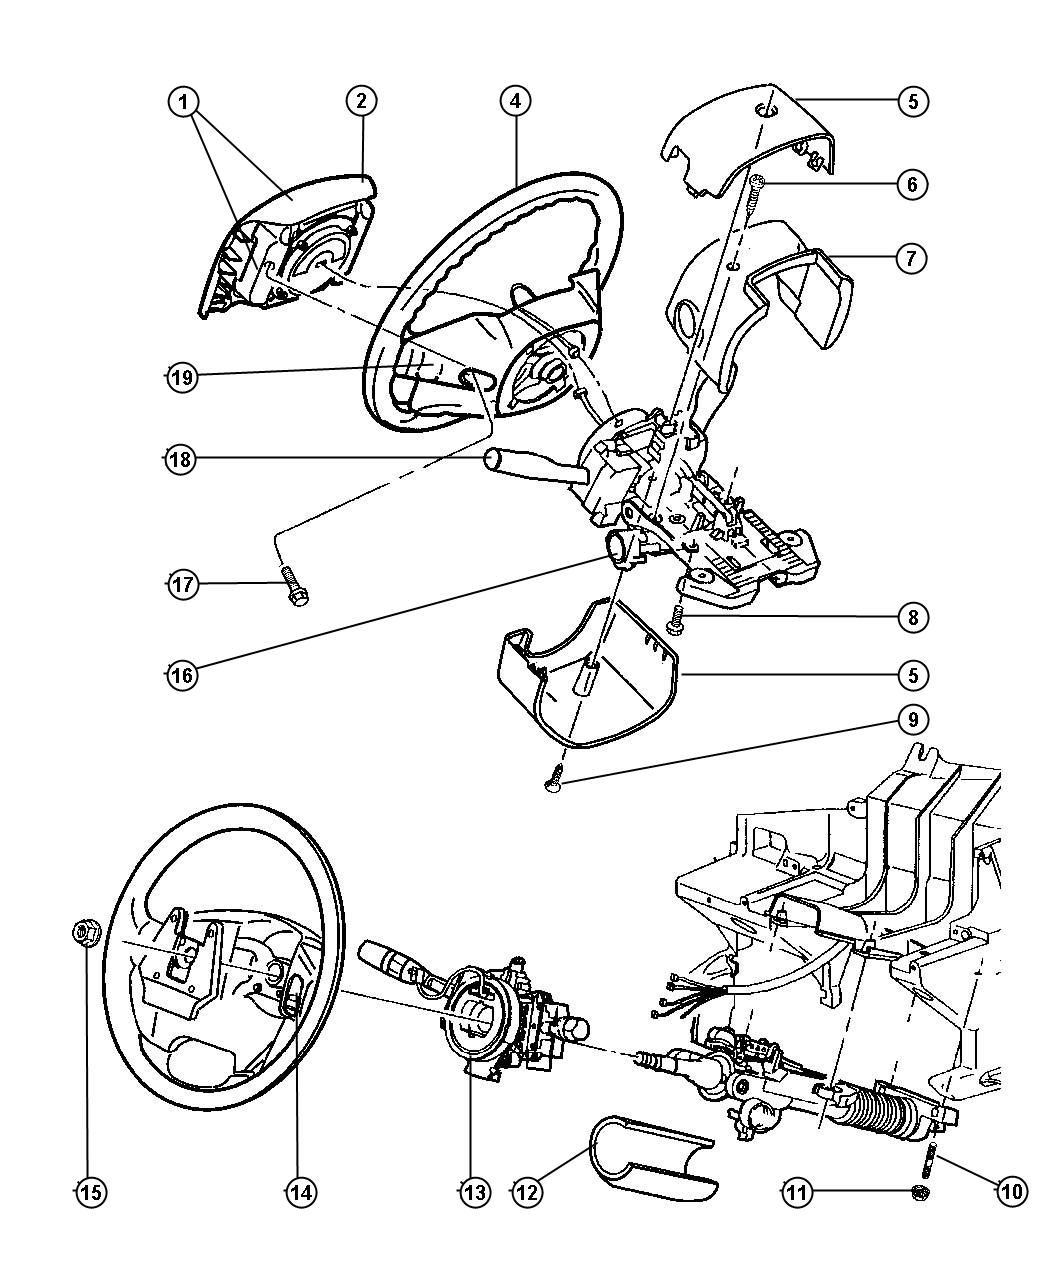 2008 Toyota Sienna Sliding Door Parts Diagram. Toyota